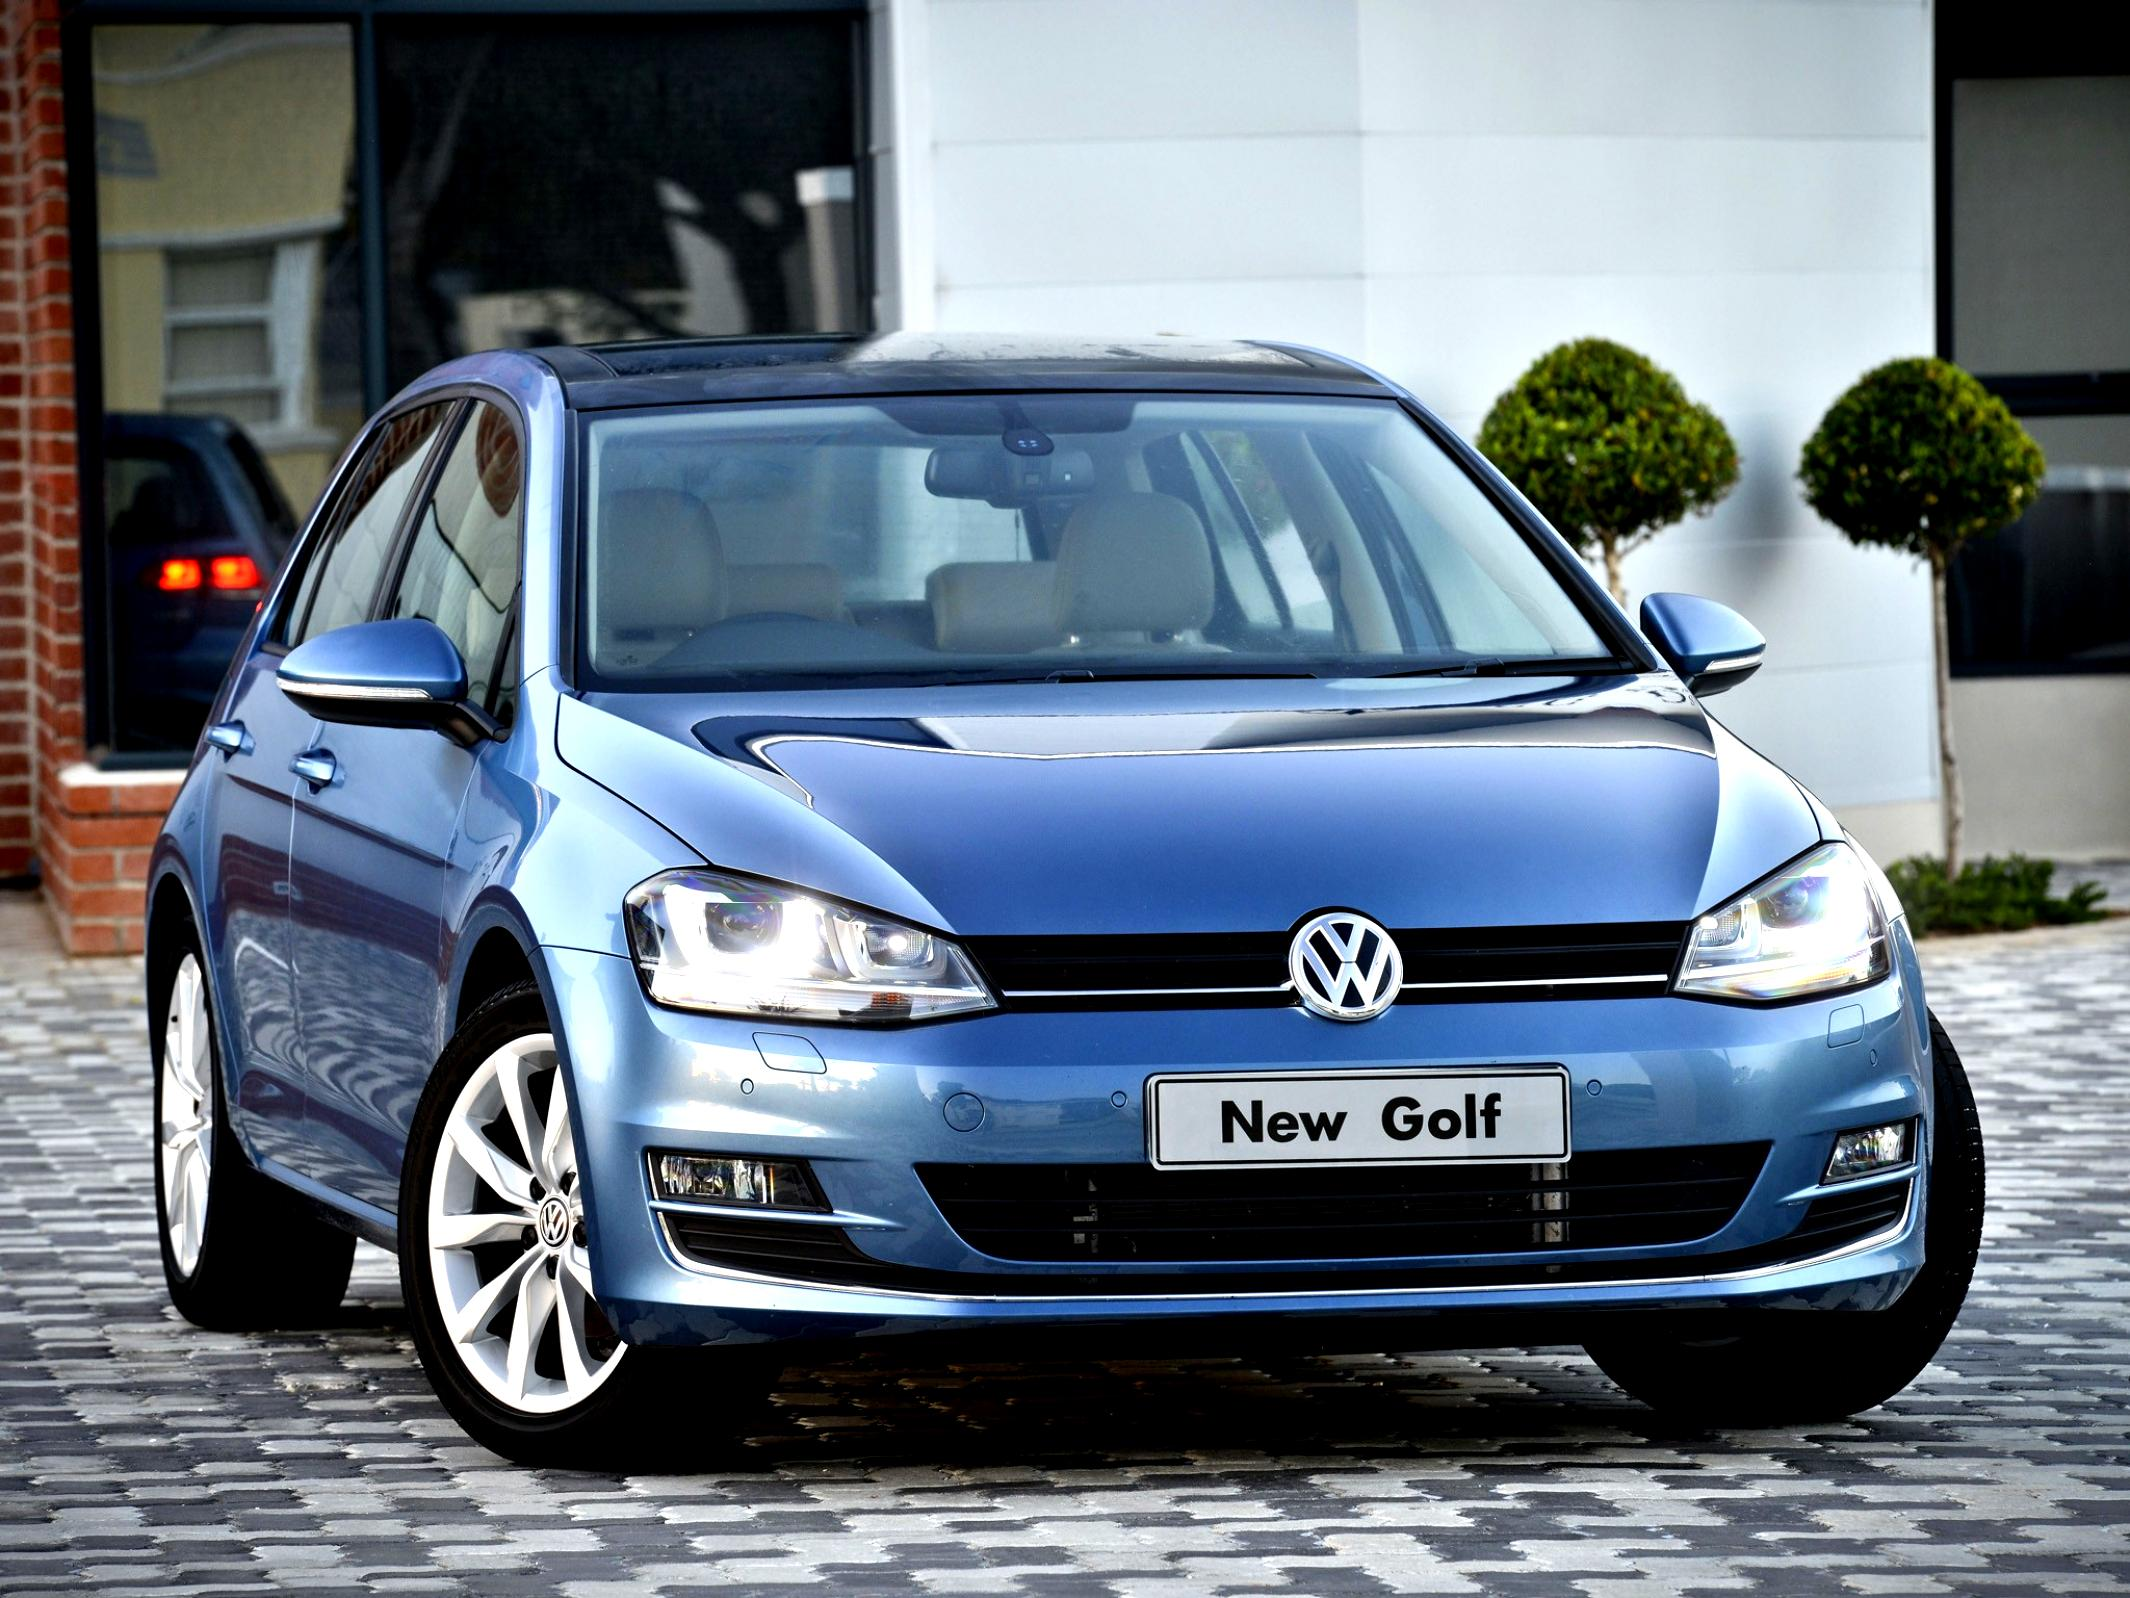 Volkswagen Golf VII 5 Doors 2012 #71